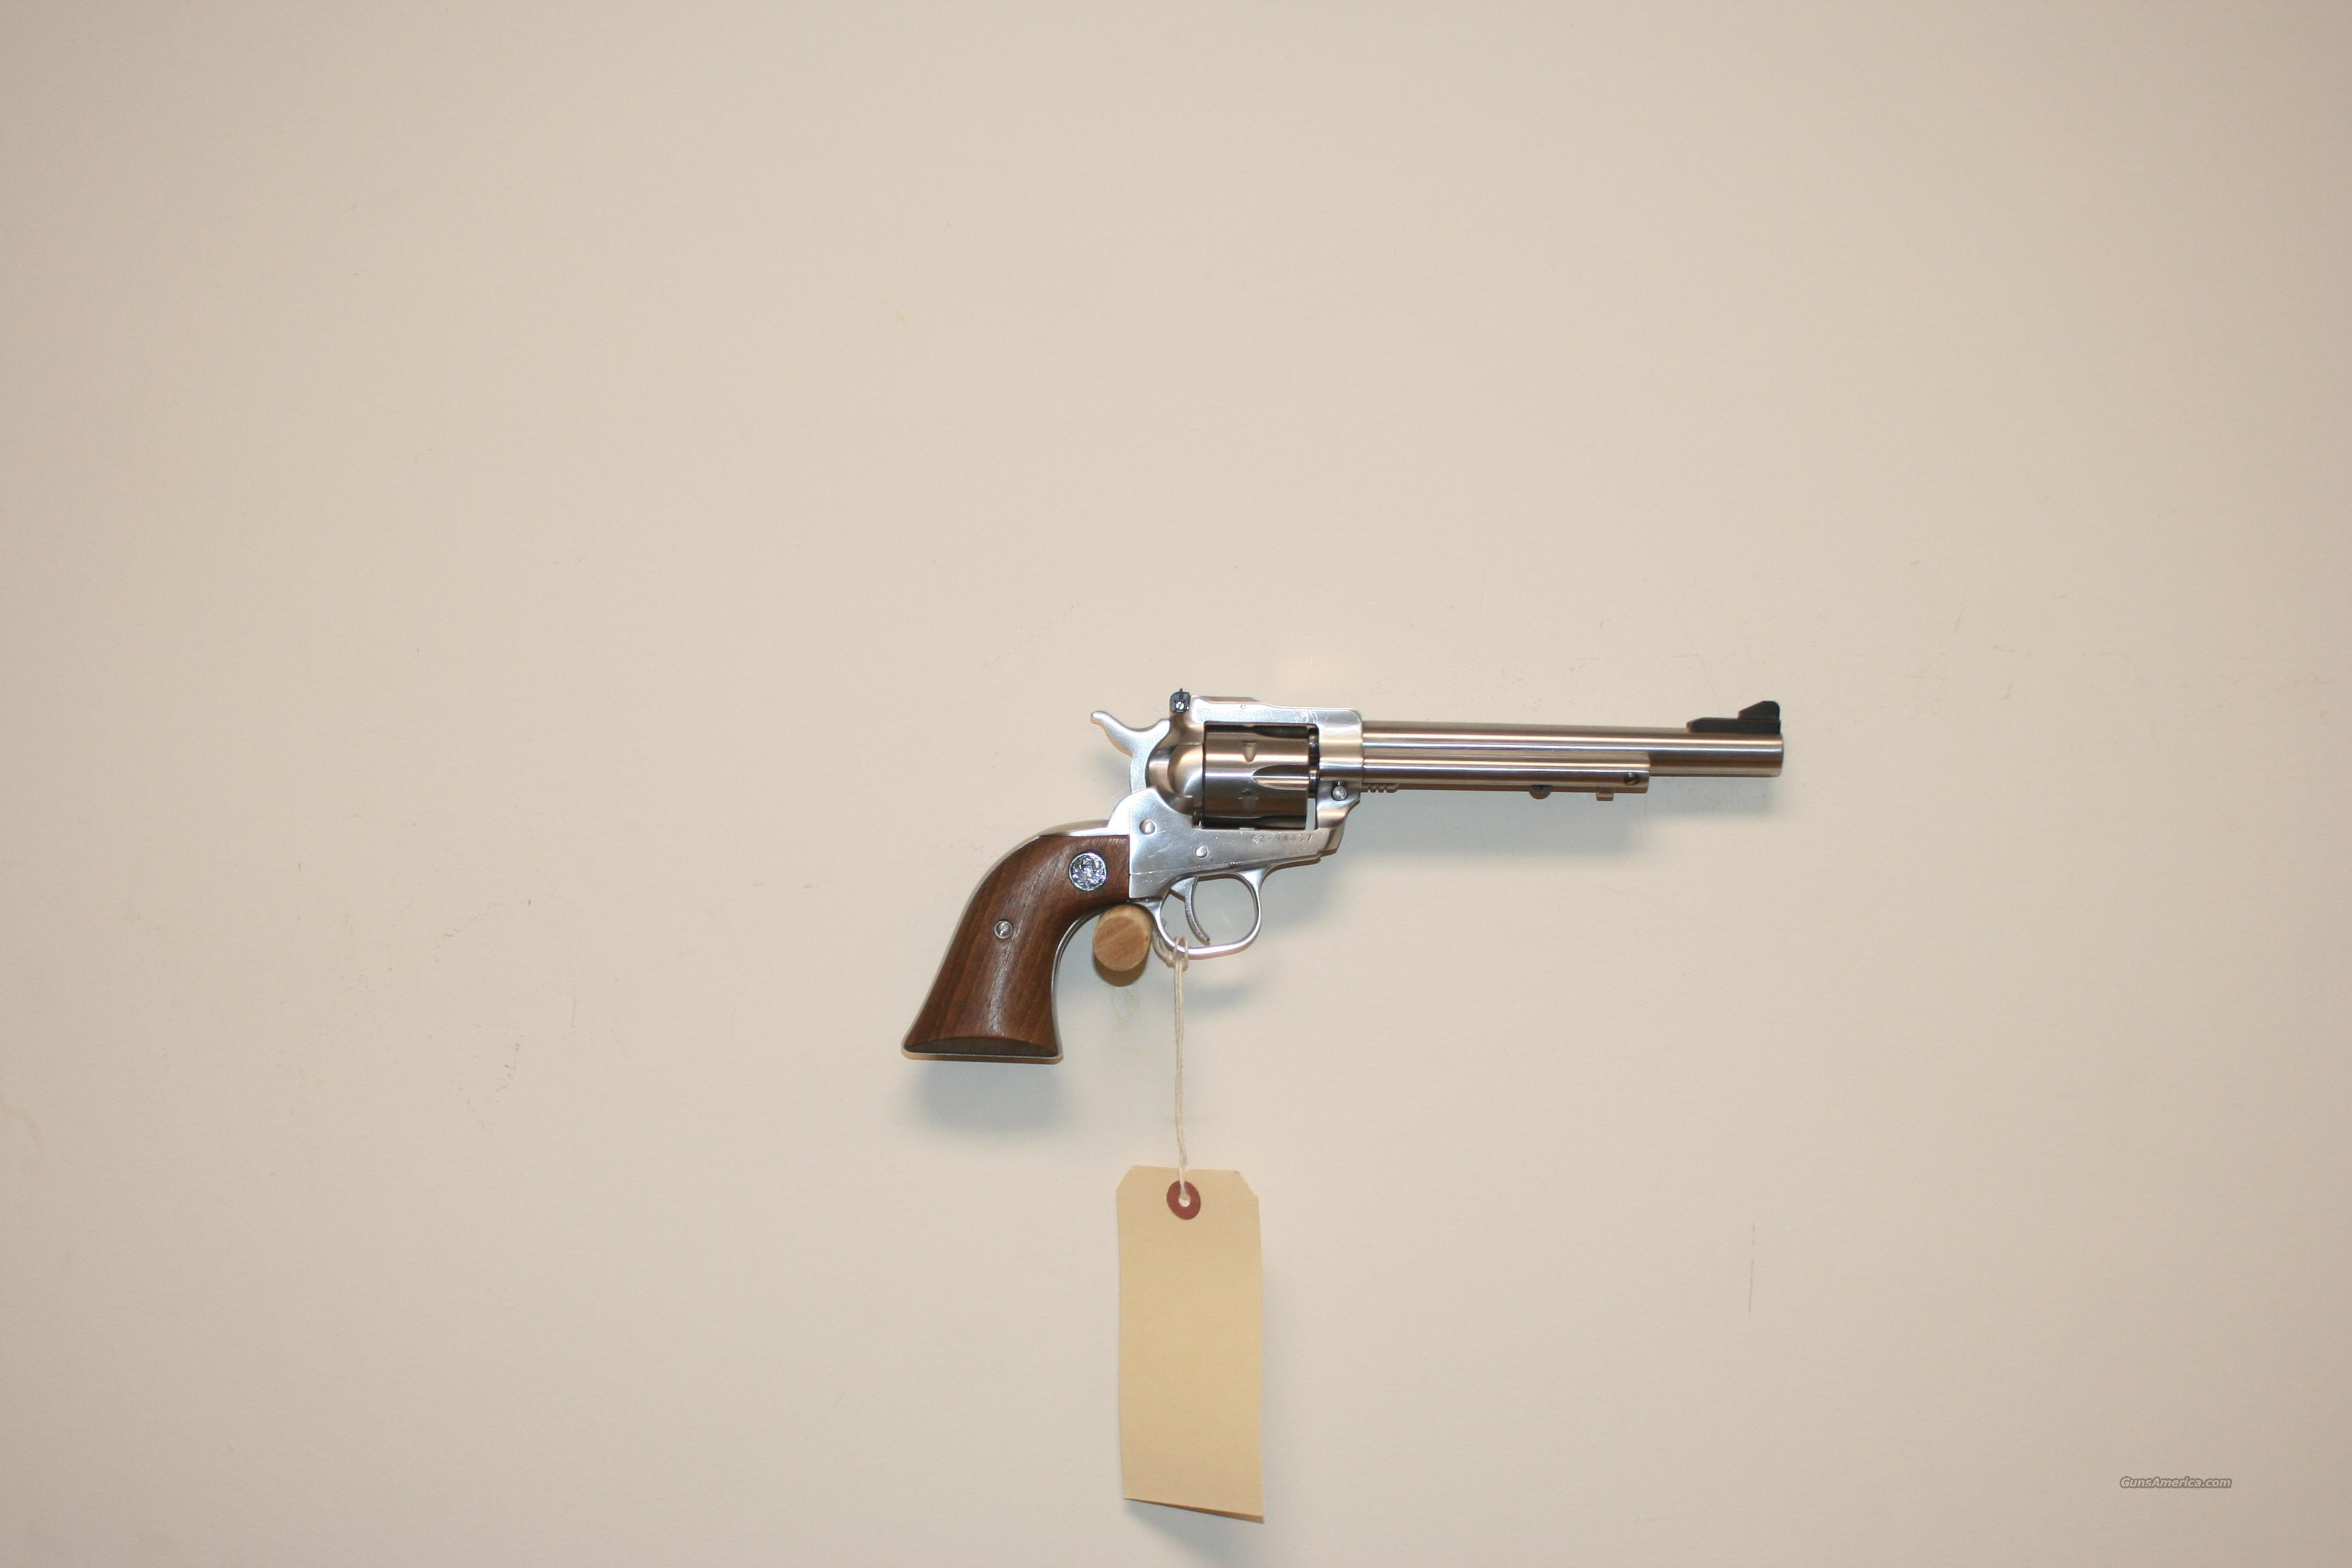 RUGER SINGLE SIX 22/22MAG STAINLESS  Guns > Pistols > Ruger Single Action Revolvers > Single Six Type